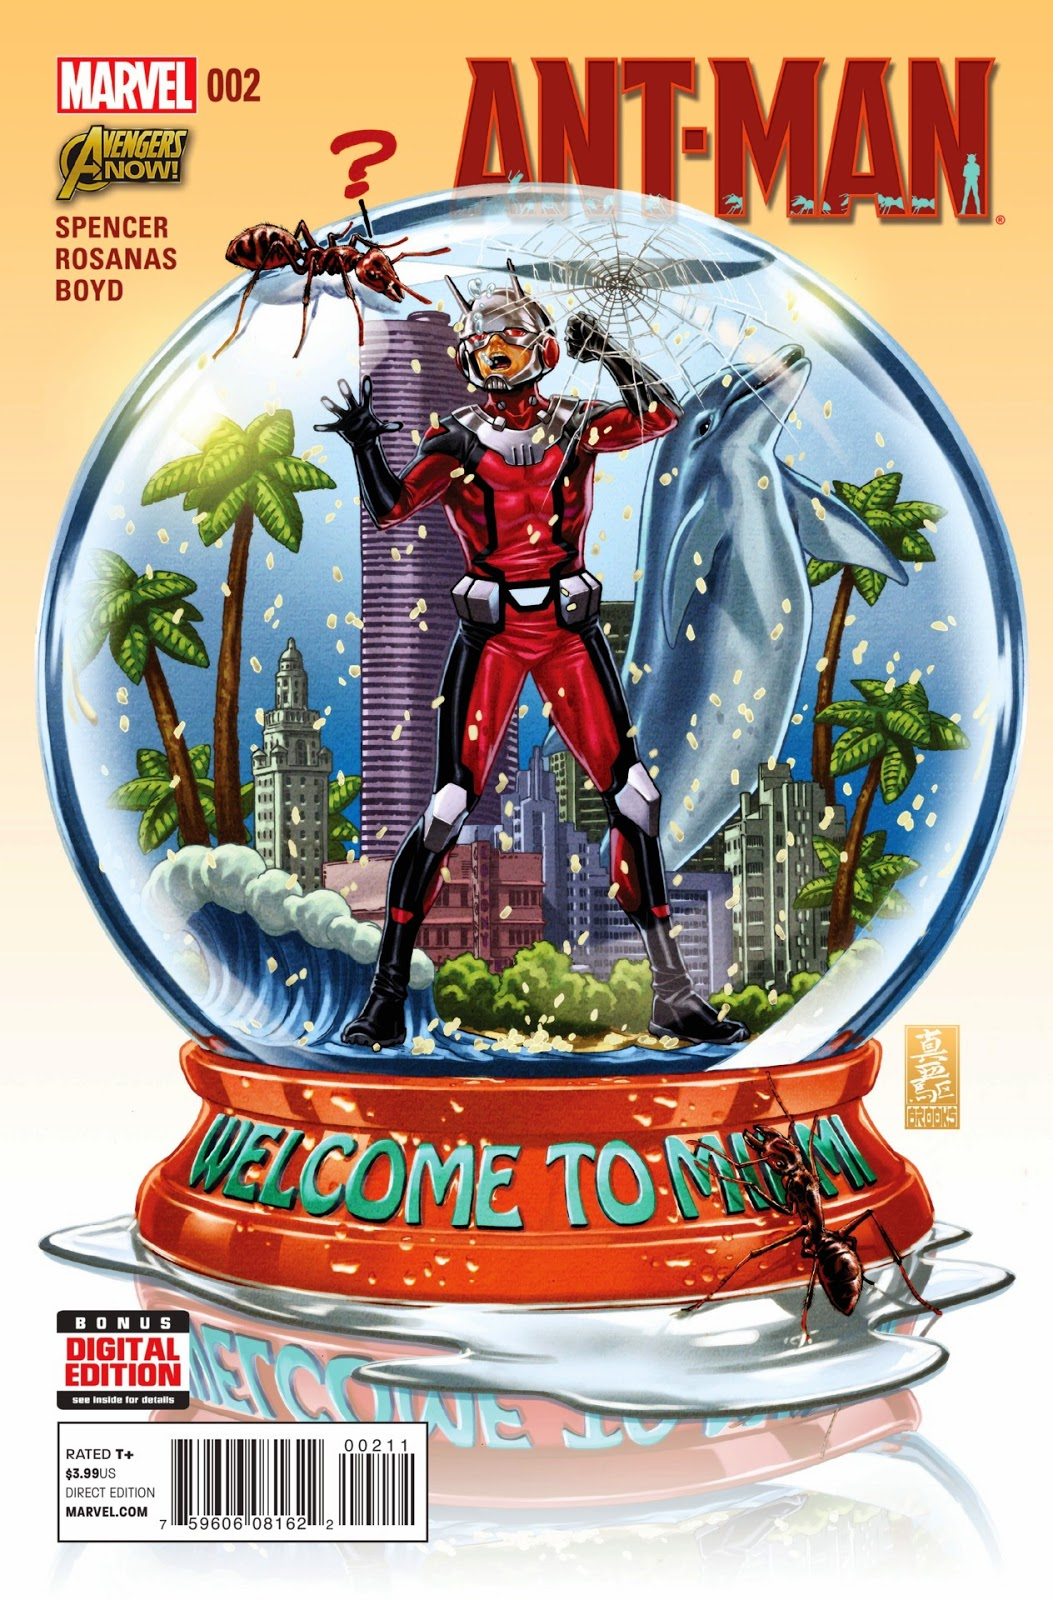 Welcome to Miami Ant-Man